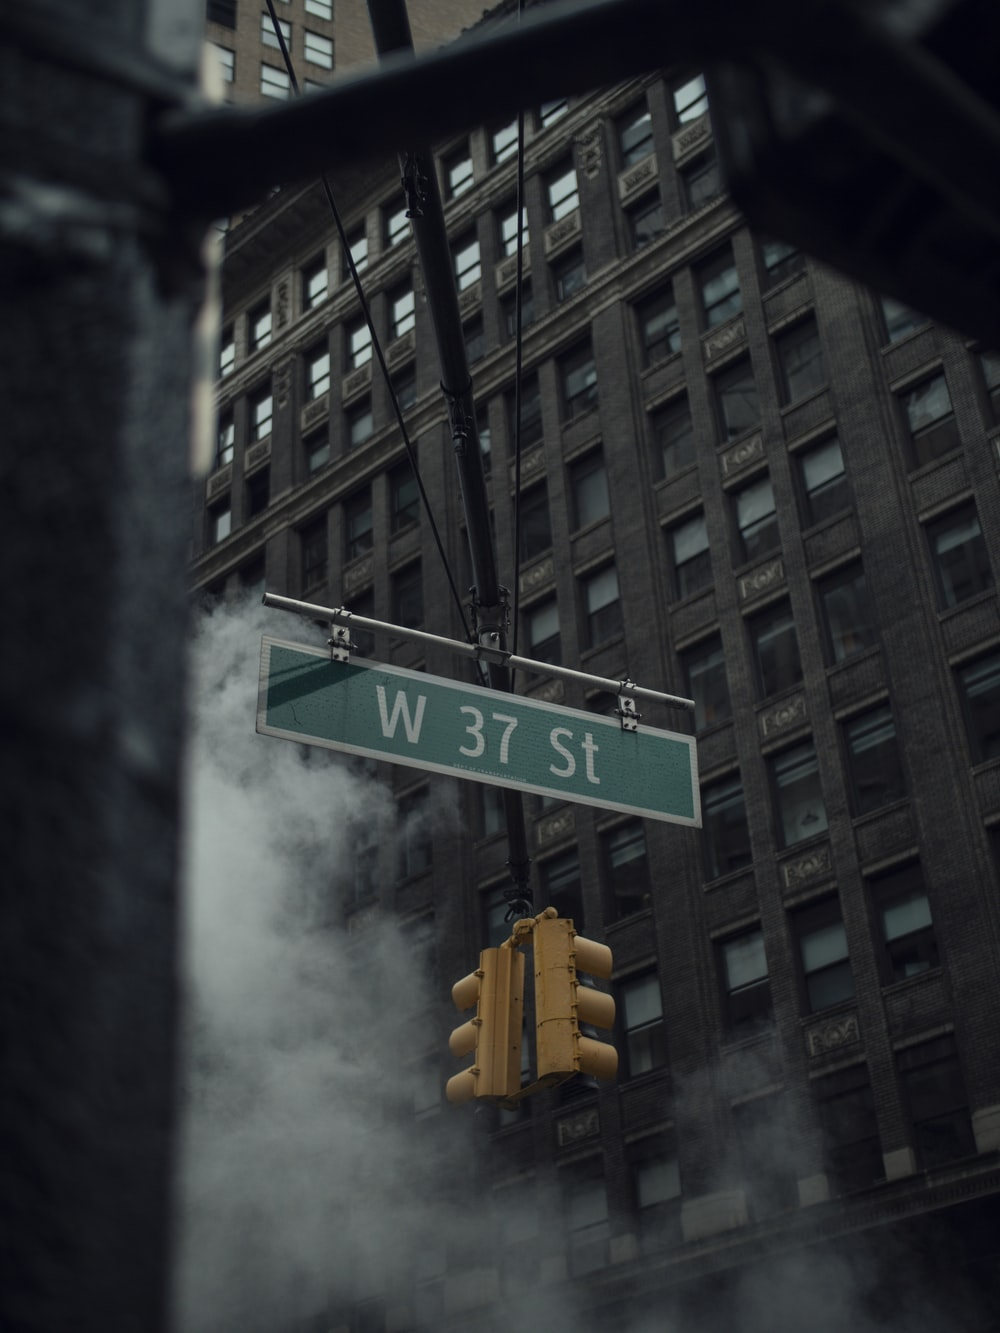 green and white street sign